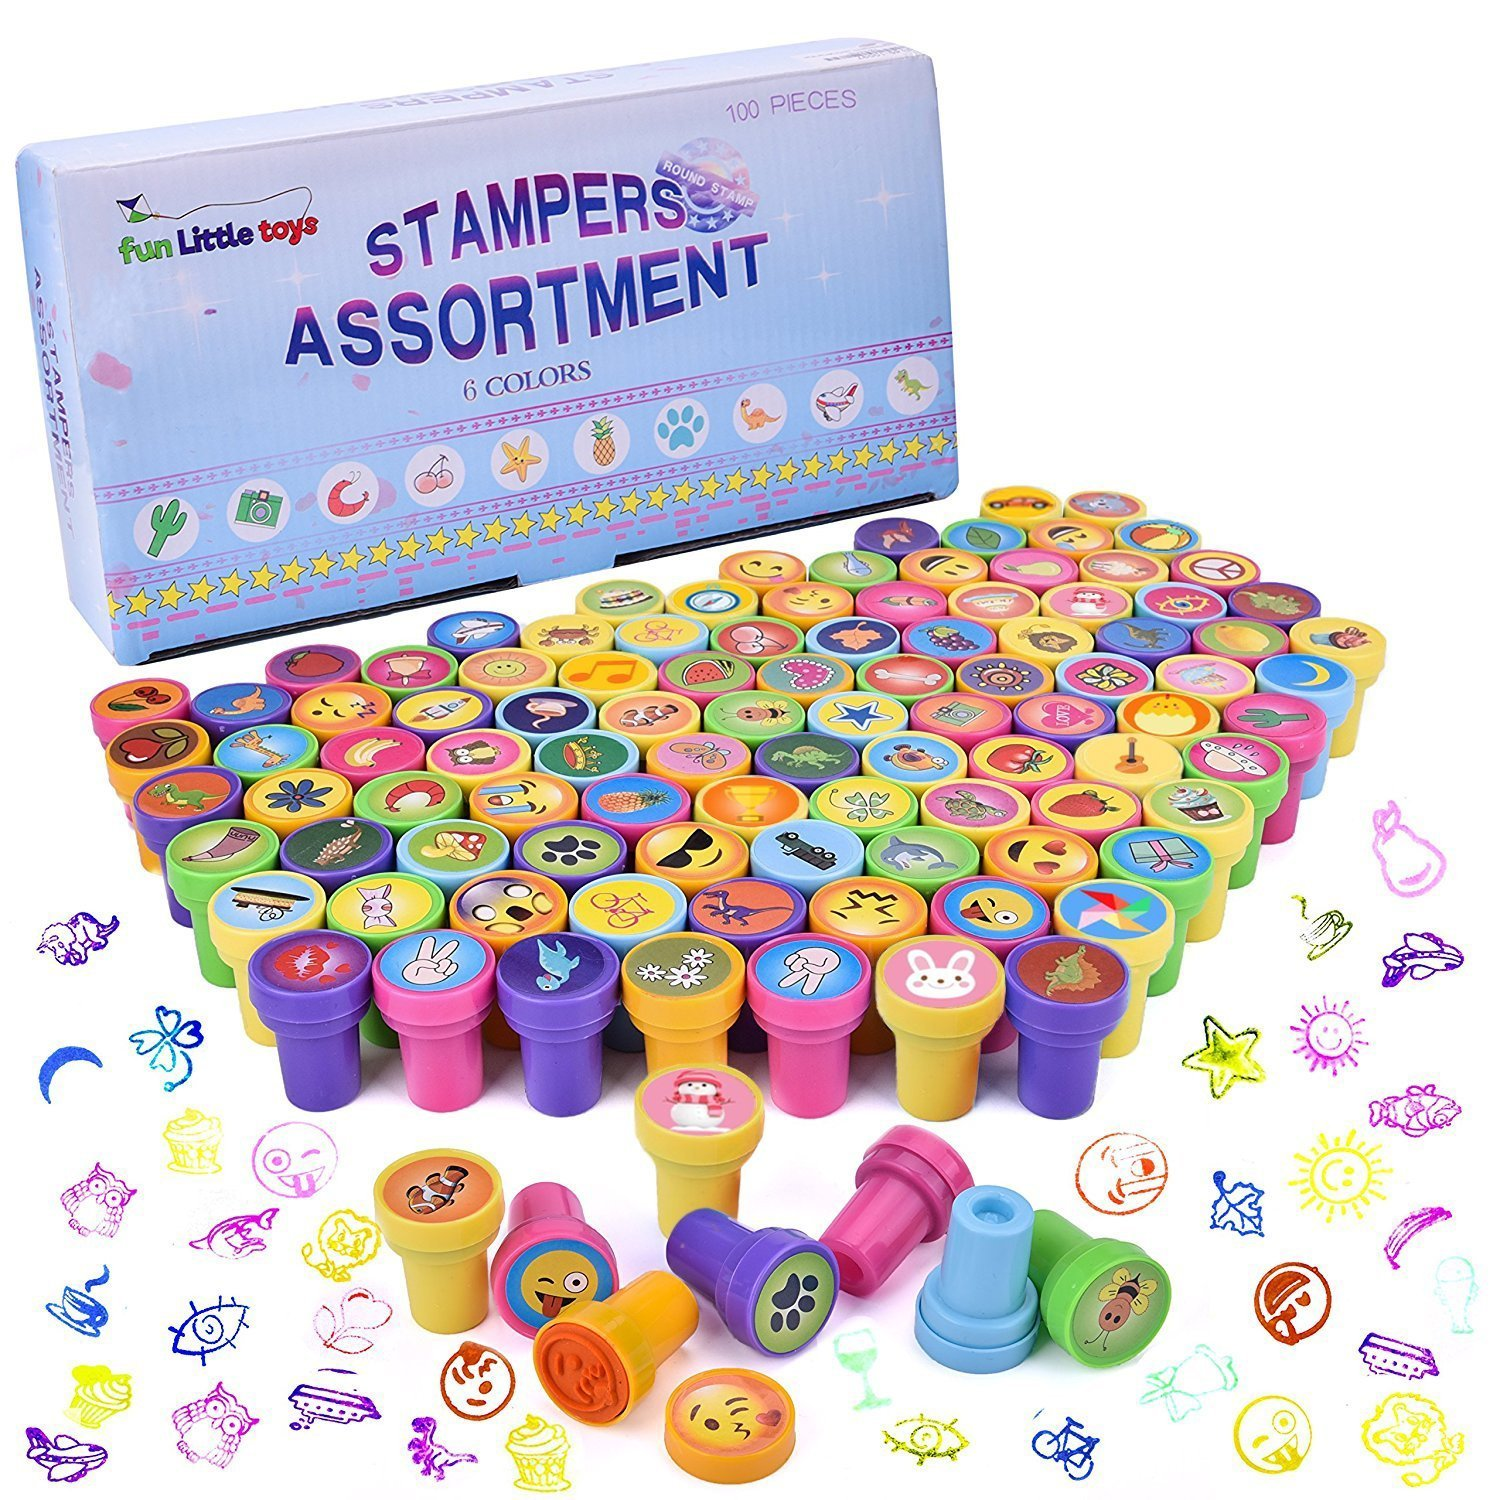 Fun Little Toys 100Pcs Assorted Stamps All in One Box Including 100 Different Designs for Kids Birthday Party Supplies, Pinata Fillers, Carnival Prizes, Goodie Bags